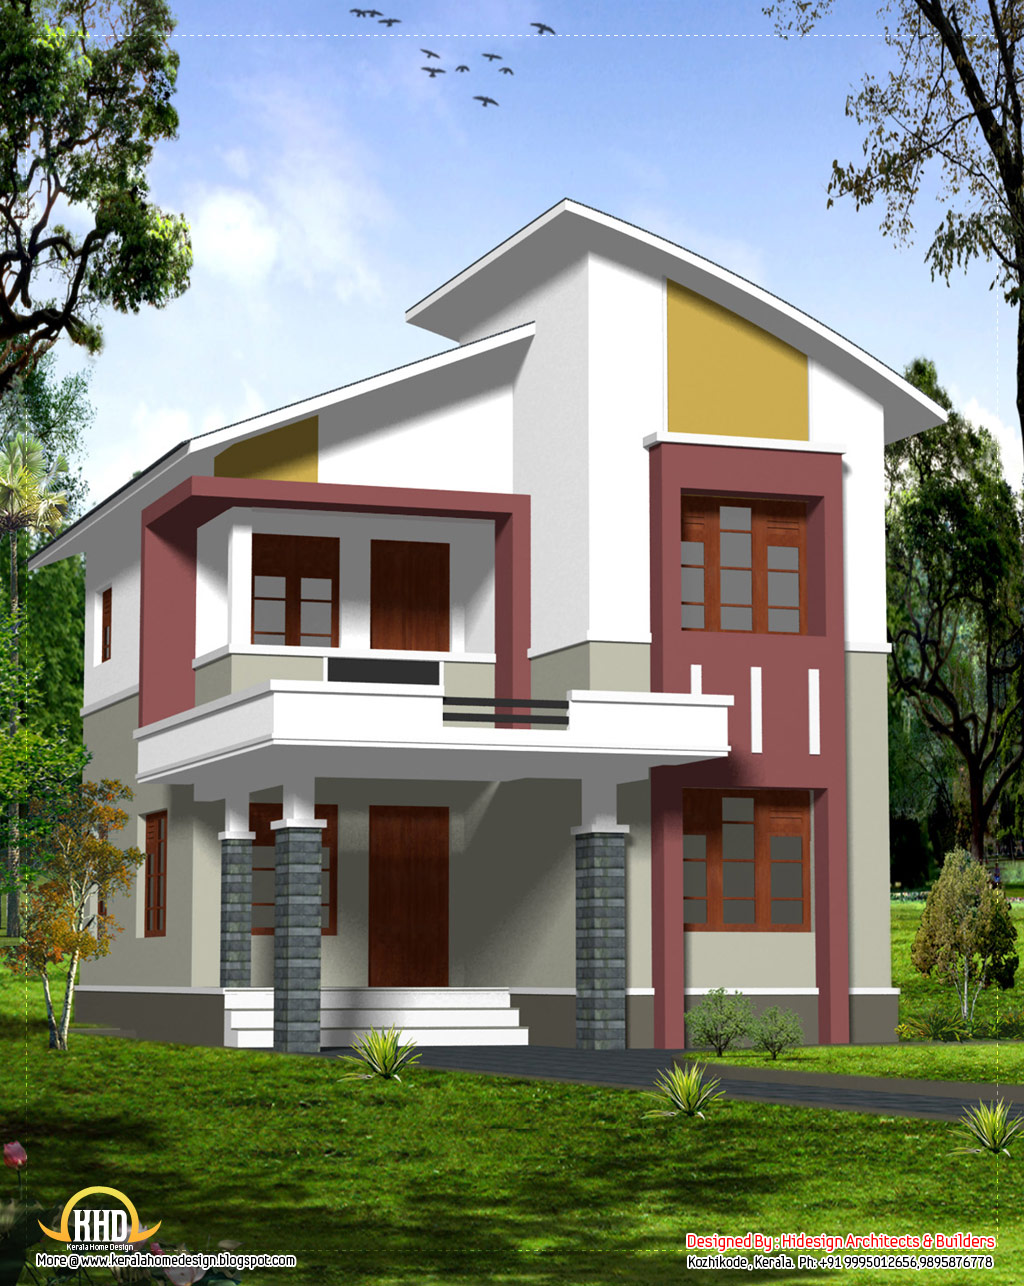 Budget home design 2140 sq ft kerala home design and for House and home decorating